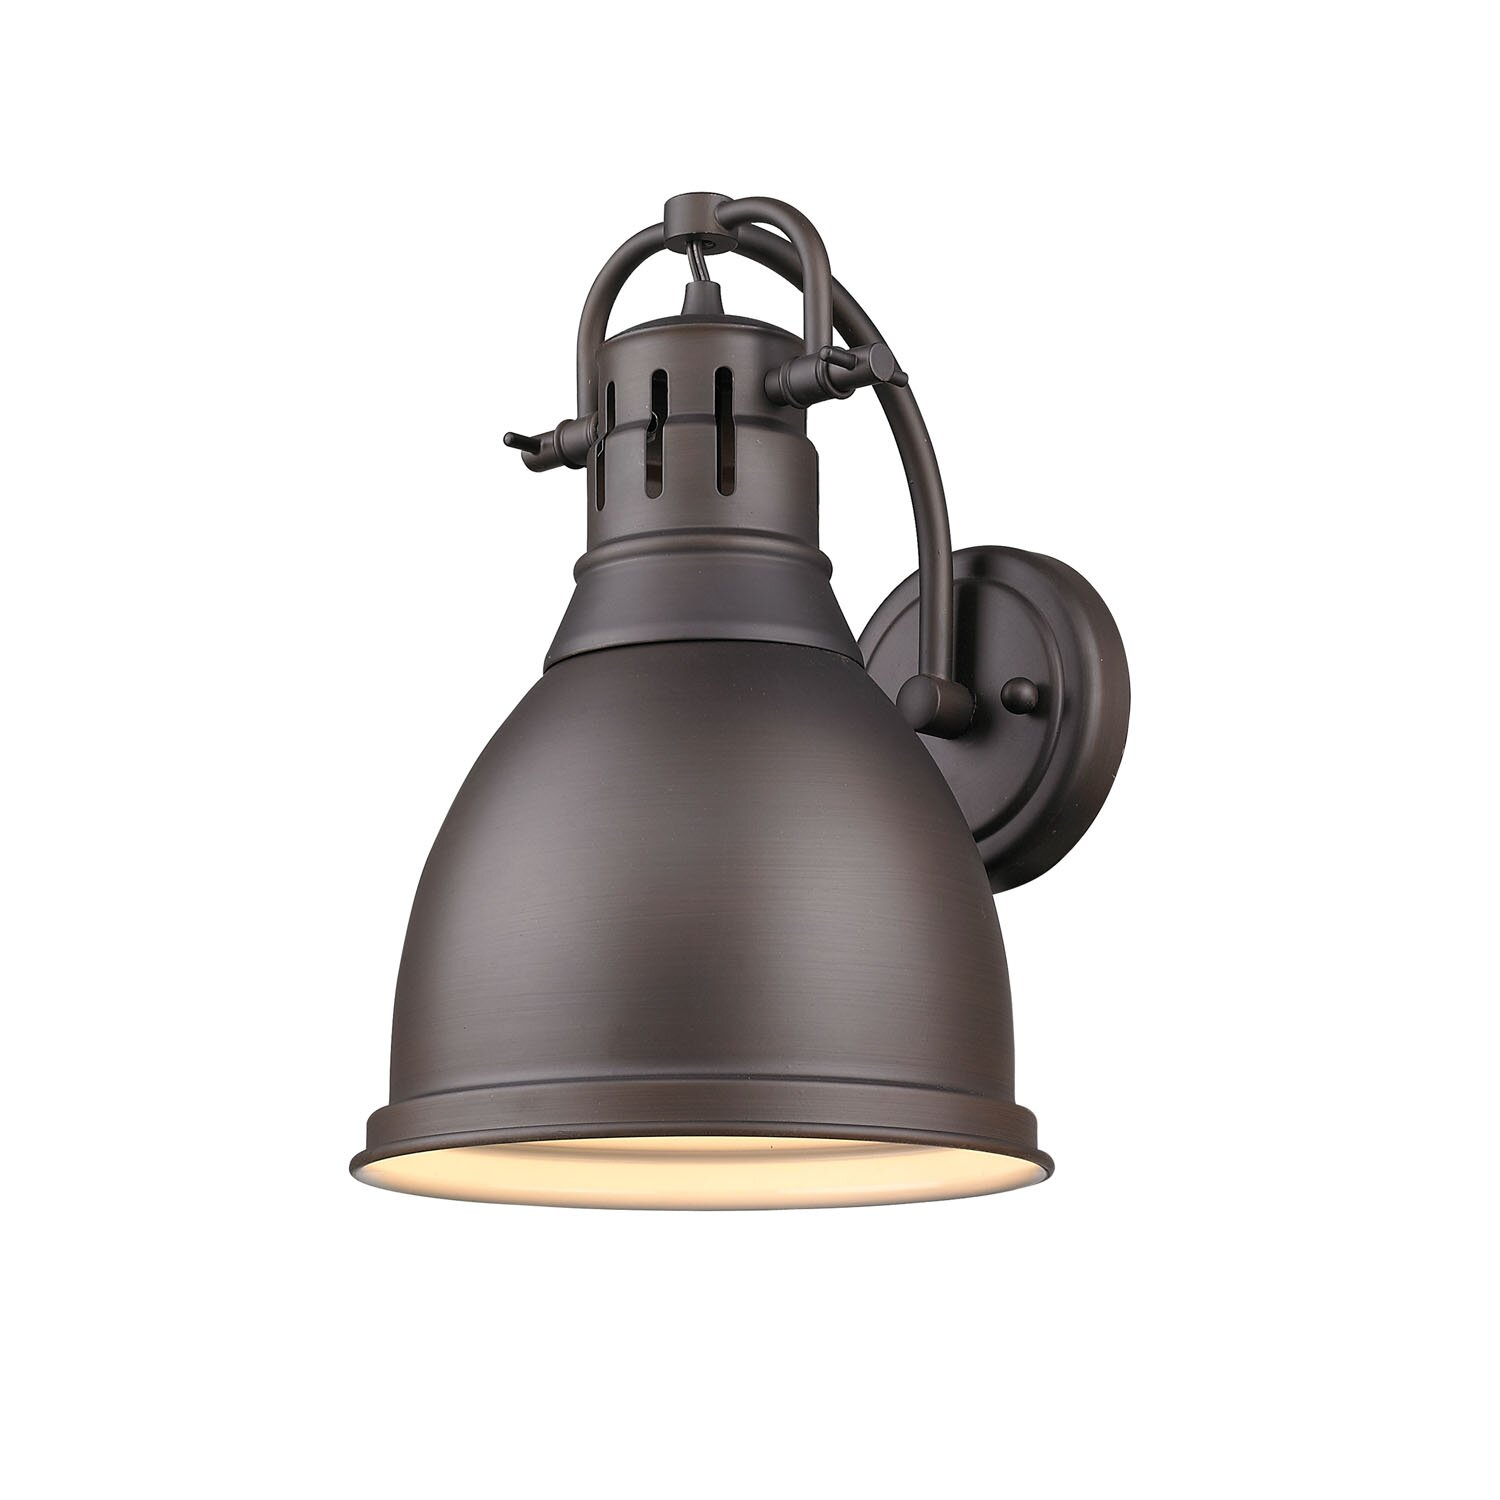 Beachcrest Home Bodalla 3 Light Metal Vanity Light Reviews: Beachcrest Home Bodalla 1-Light Rubbed Bronze Wall Sconce & Reviews